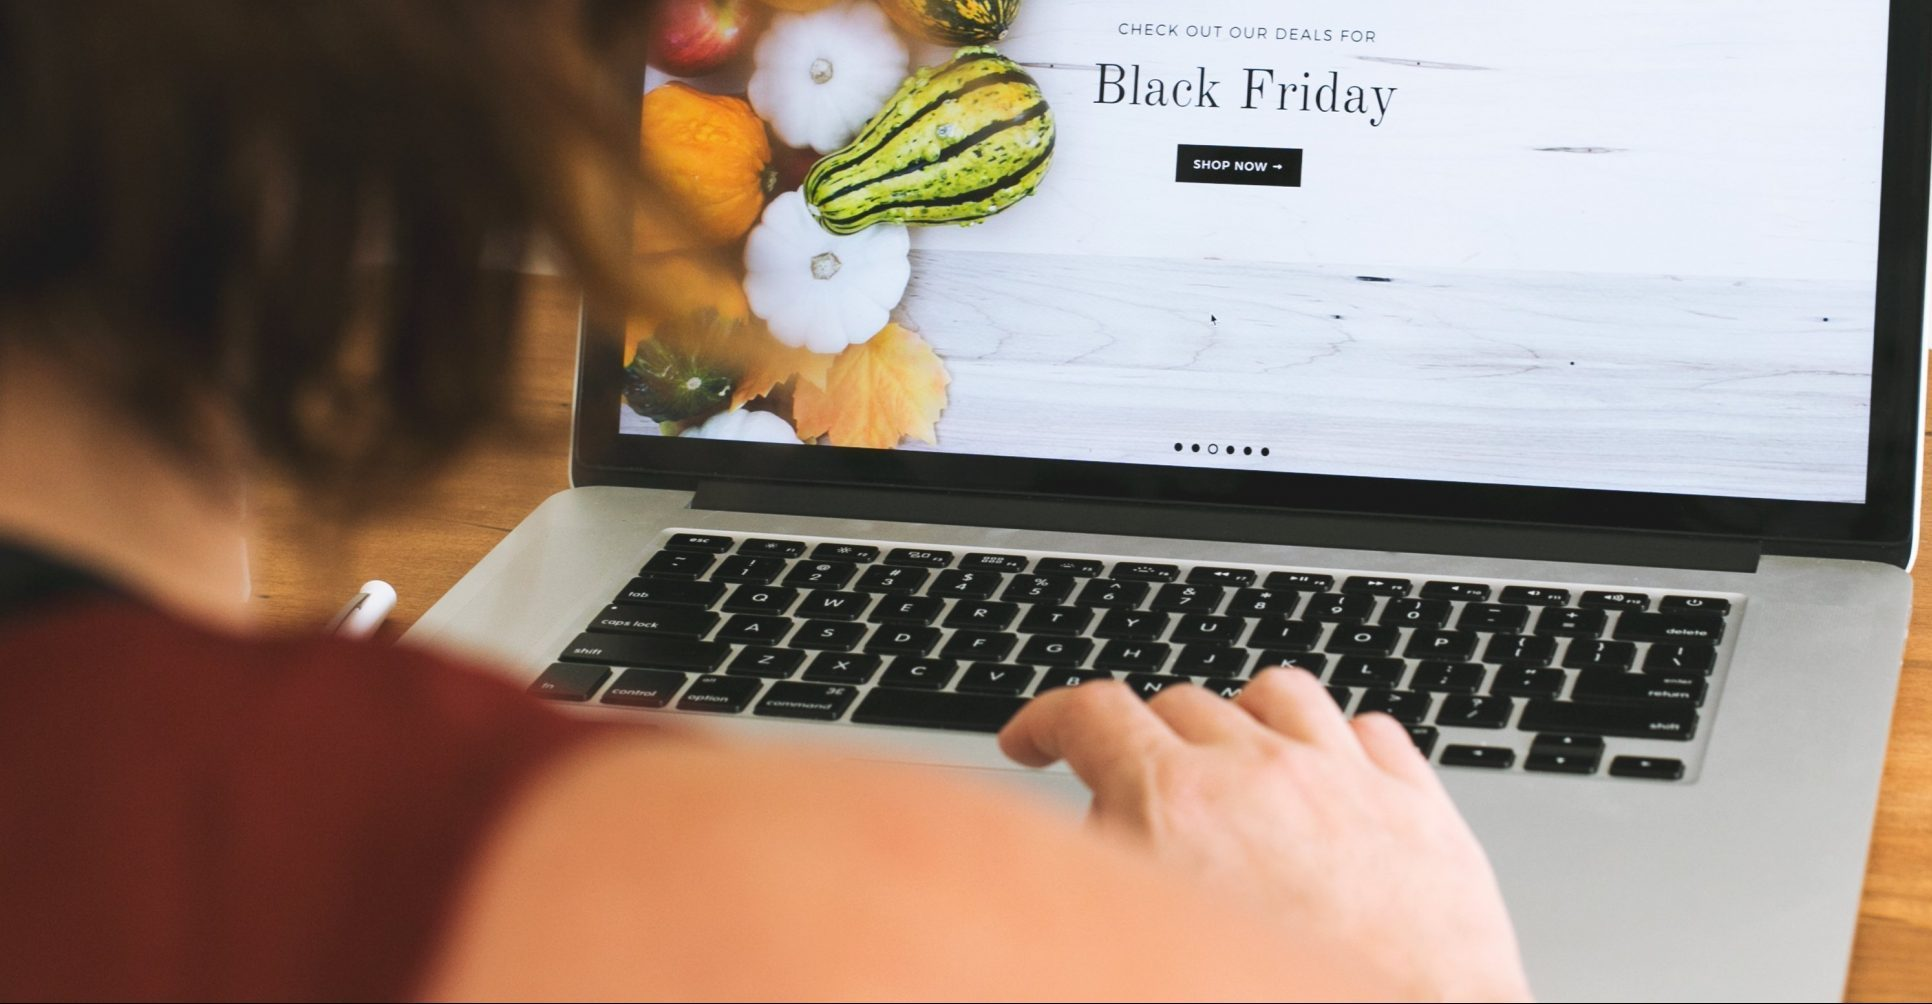 5 Tips to Get the Best Deals on Black Friday And Cyber Monday